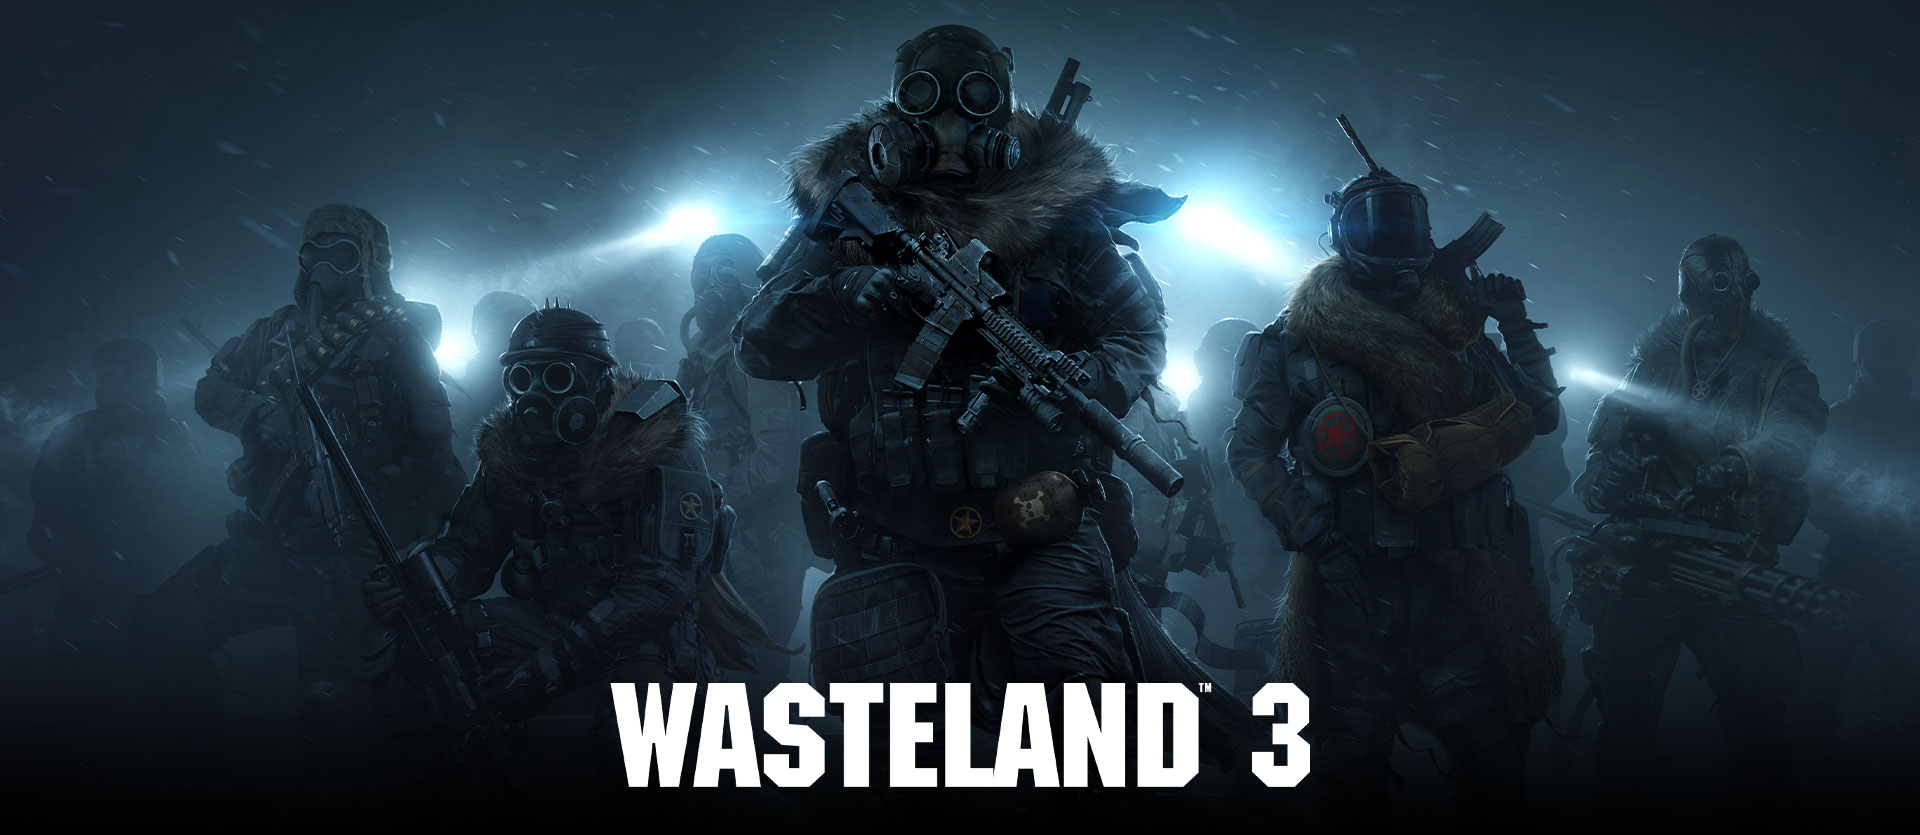 Wasteland 3, heavily armed characters in a snowstorm at night wearing gas masks